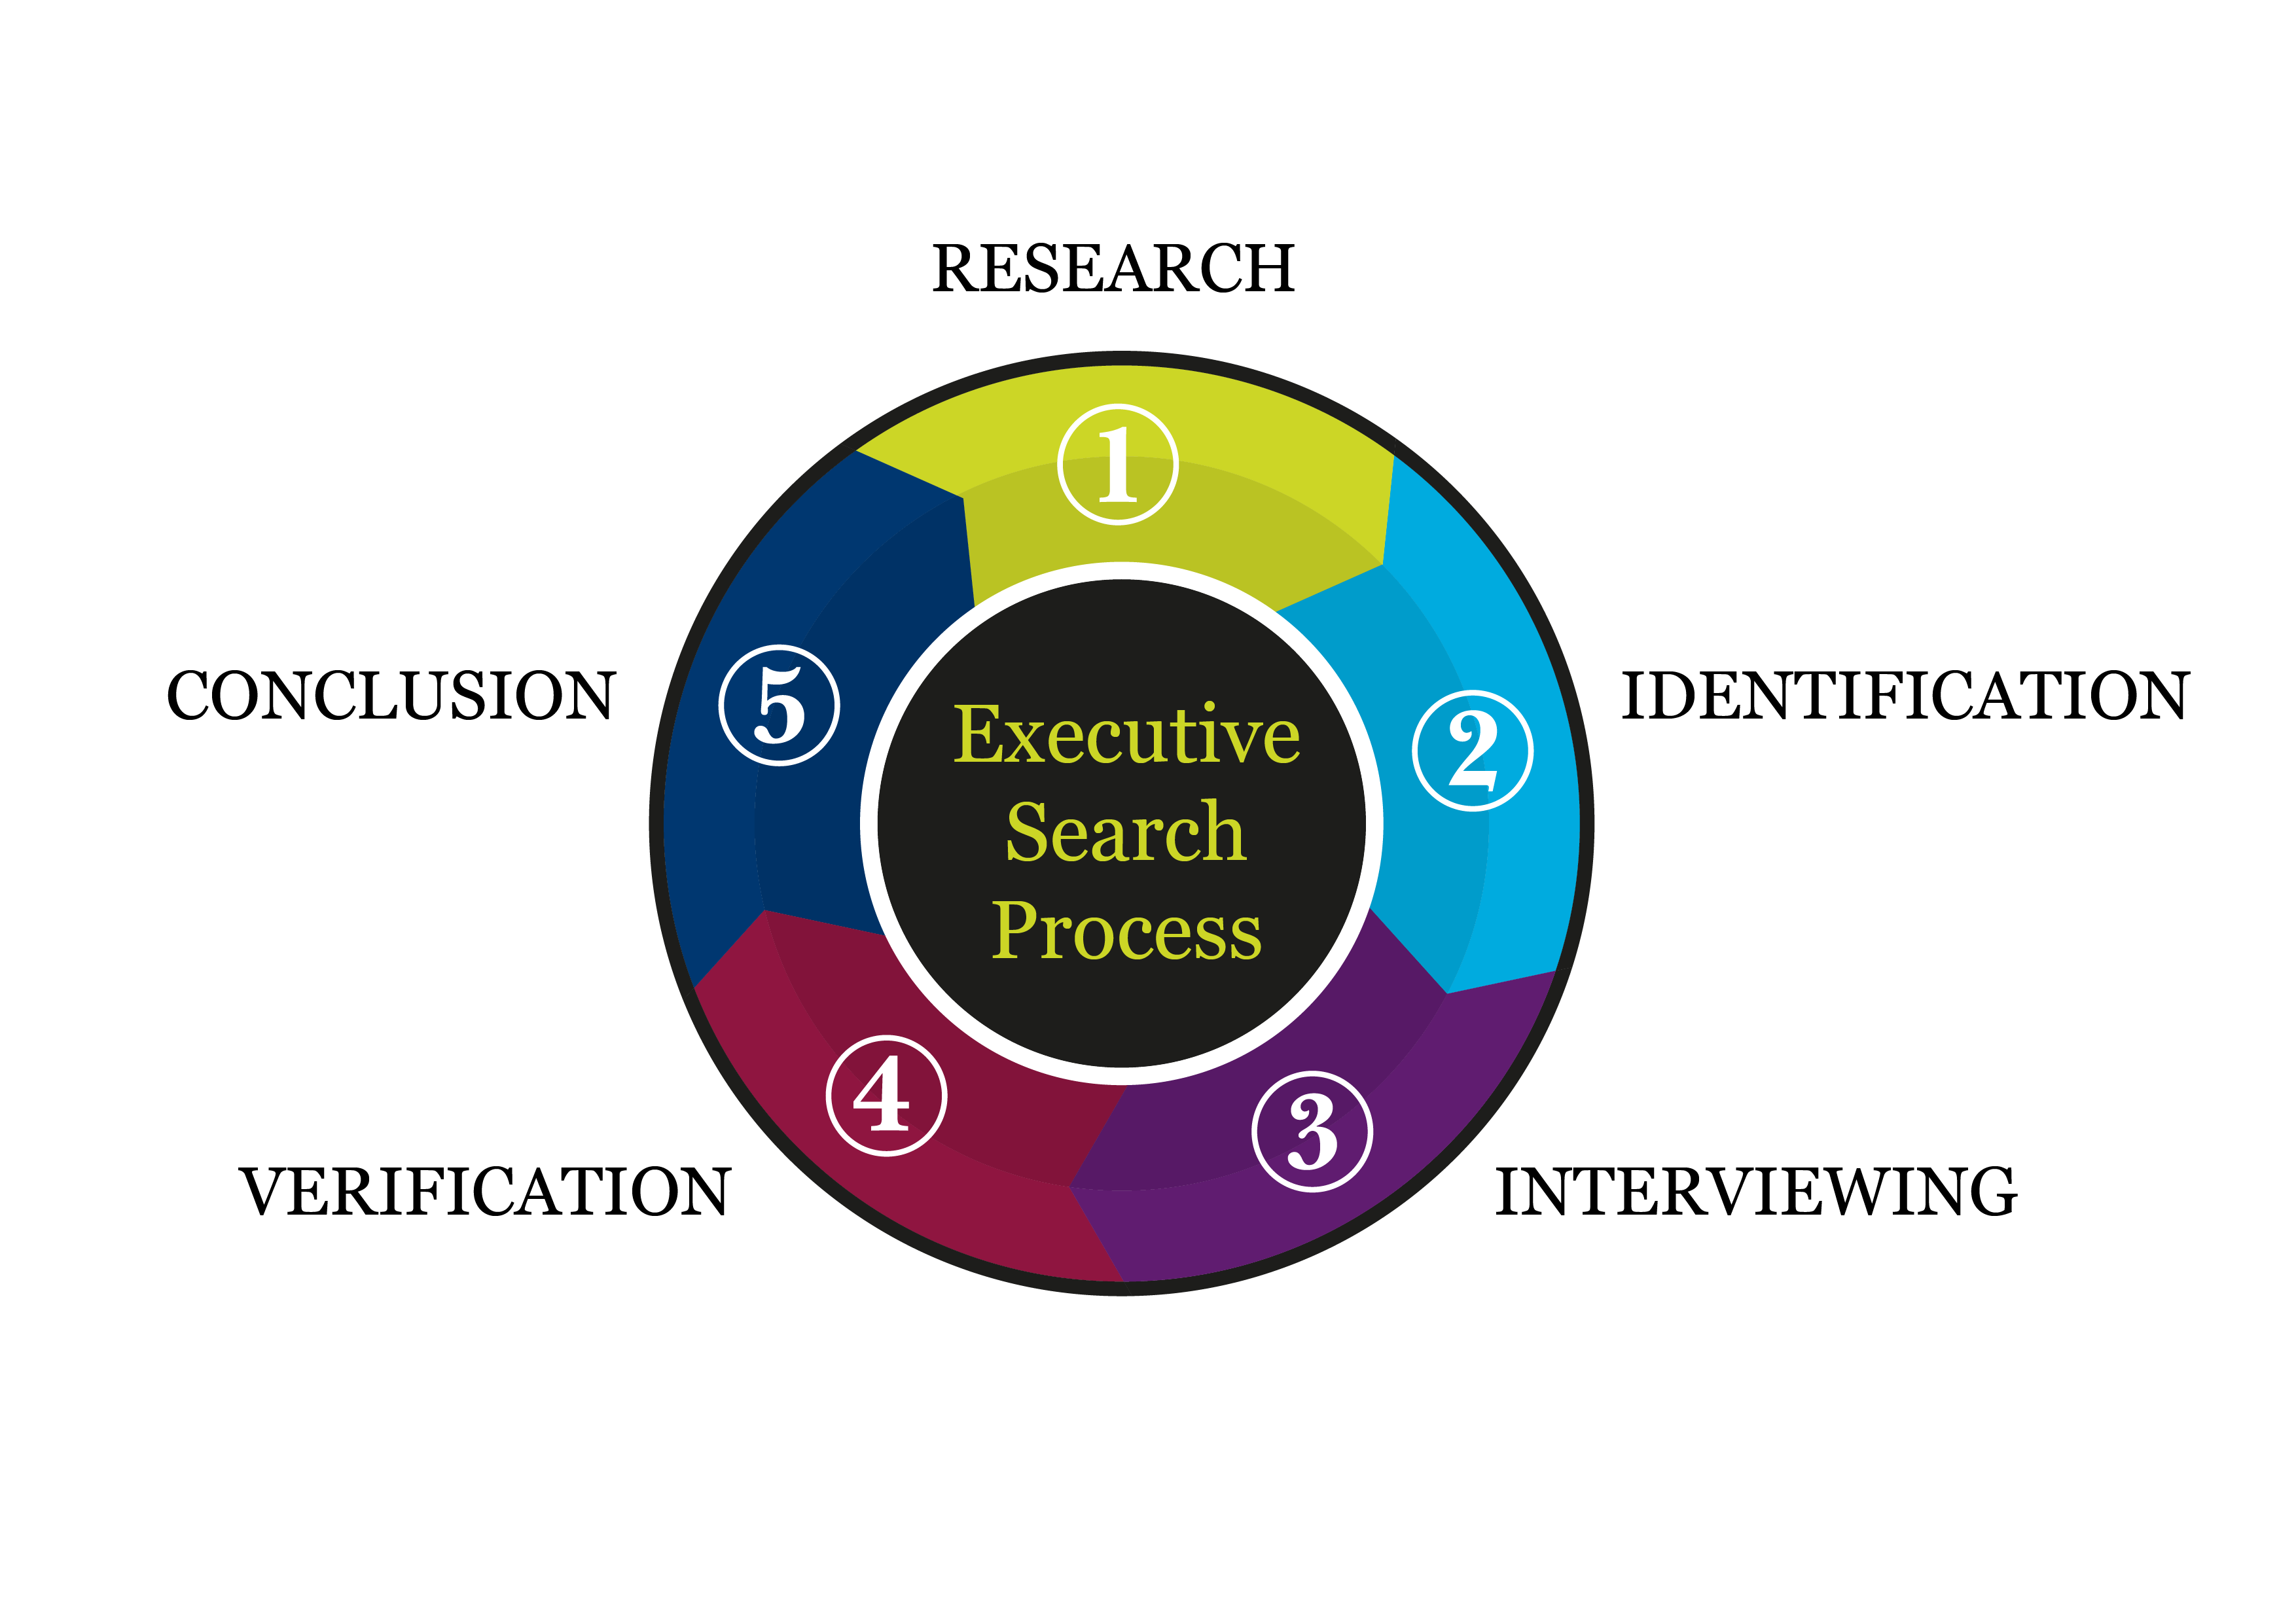 There are 5 Steps to the Maxwell Stephens Executive Search Process